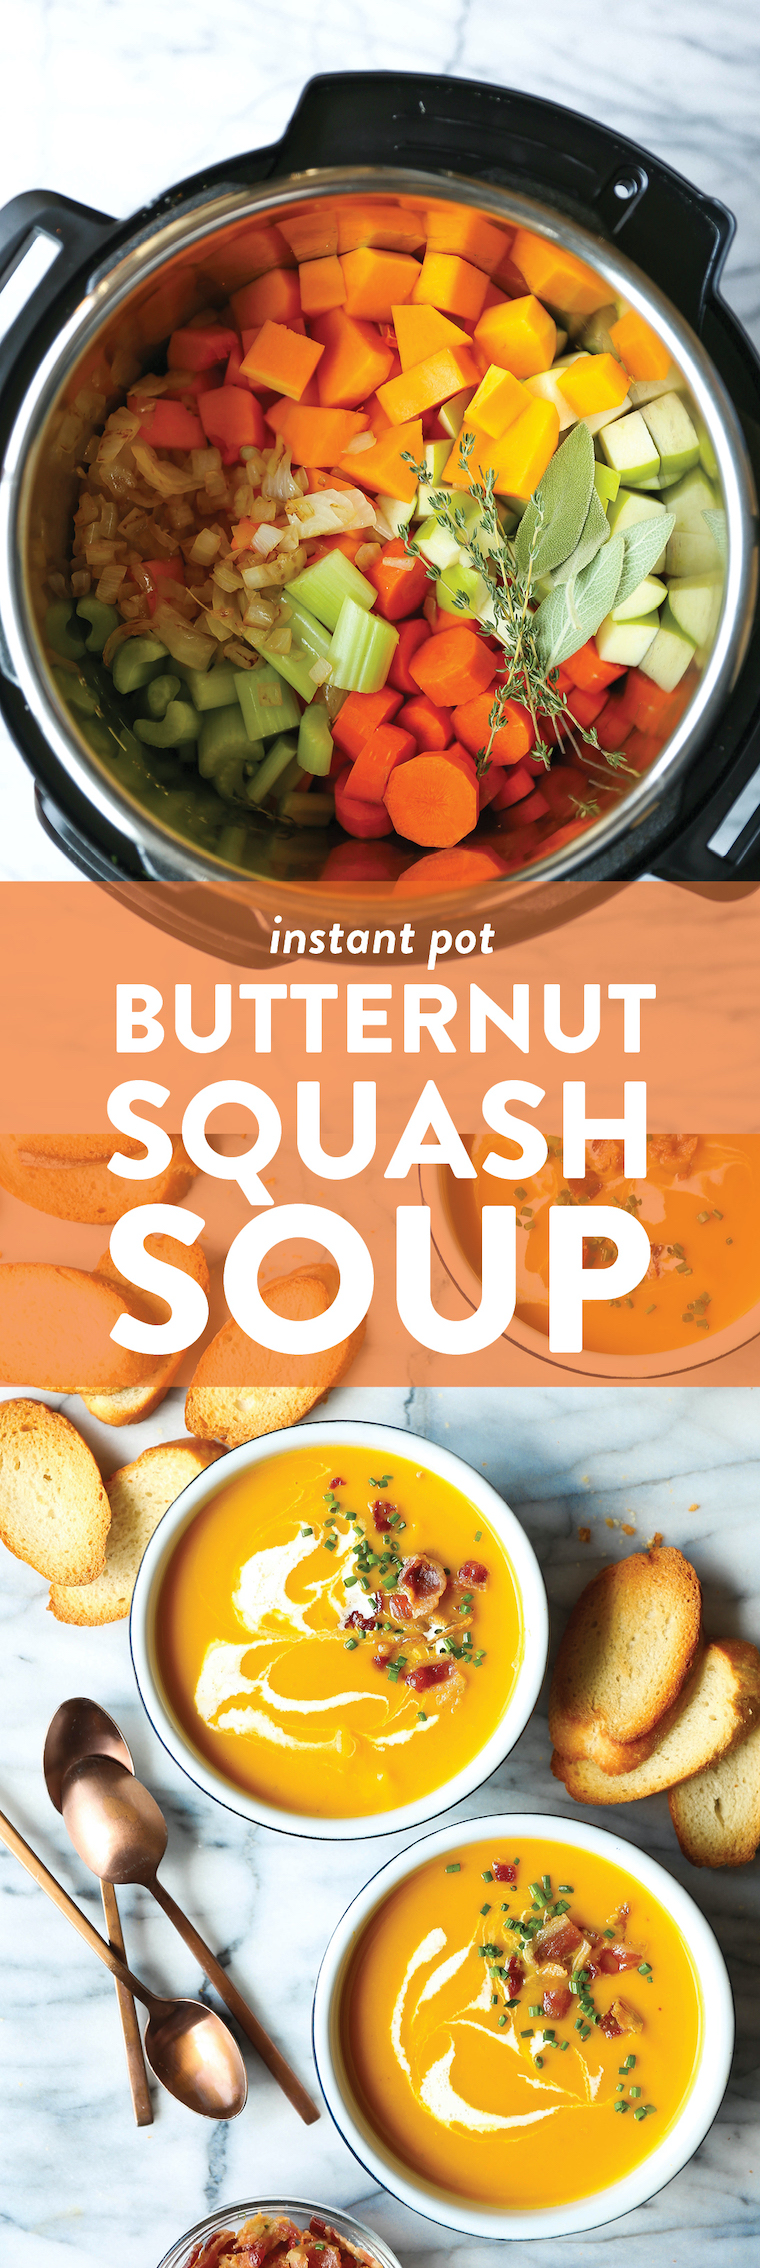 Instant Pot Butternut Squash Soup - Now you can make butternut squash soup in just half the time in the IP! Quick, easy, velvety smooth and so so cozy.